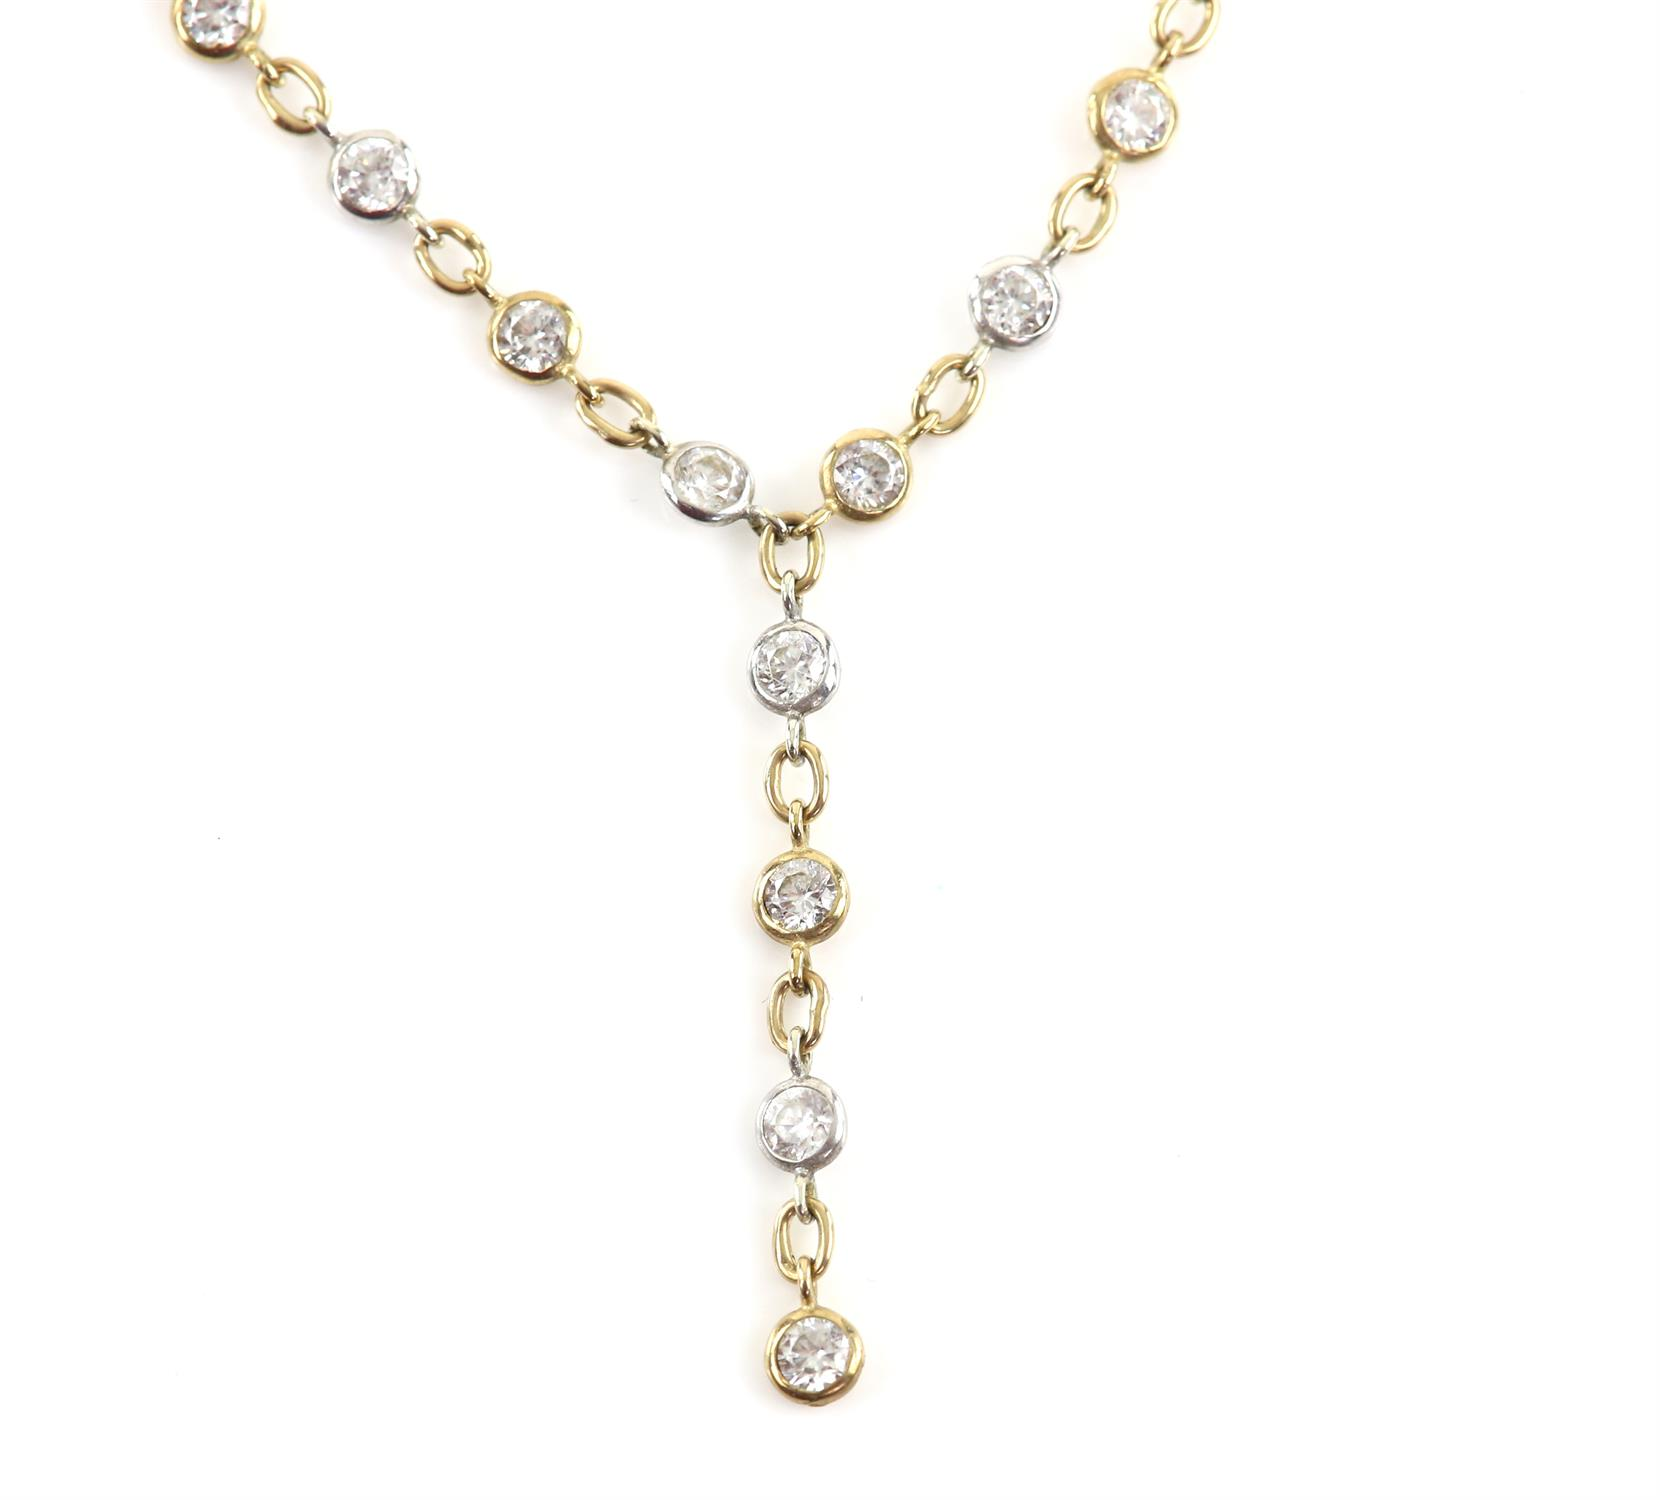 Cubic zirconia necklace, multi stone chain necklace, set with round cut cubic zirconia,